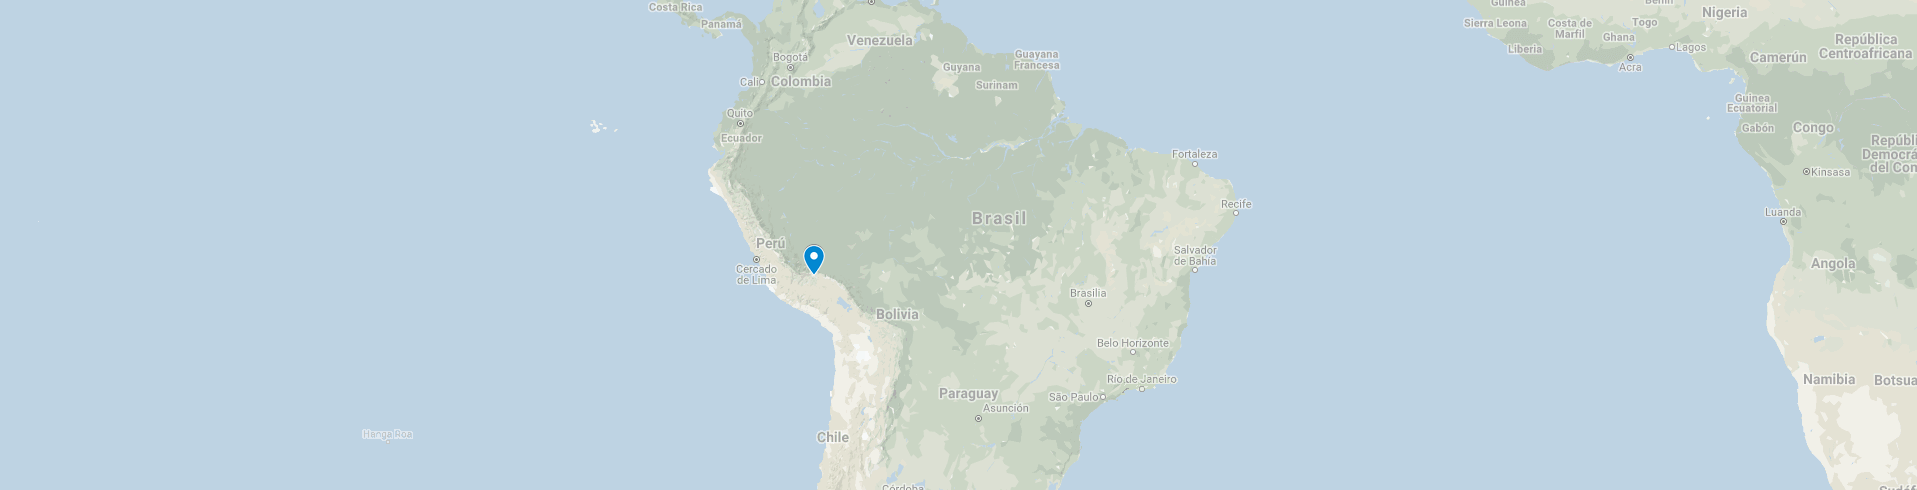 Study Spanish in Peru: map of Peru